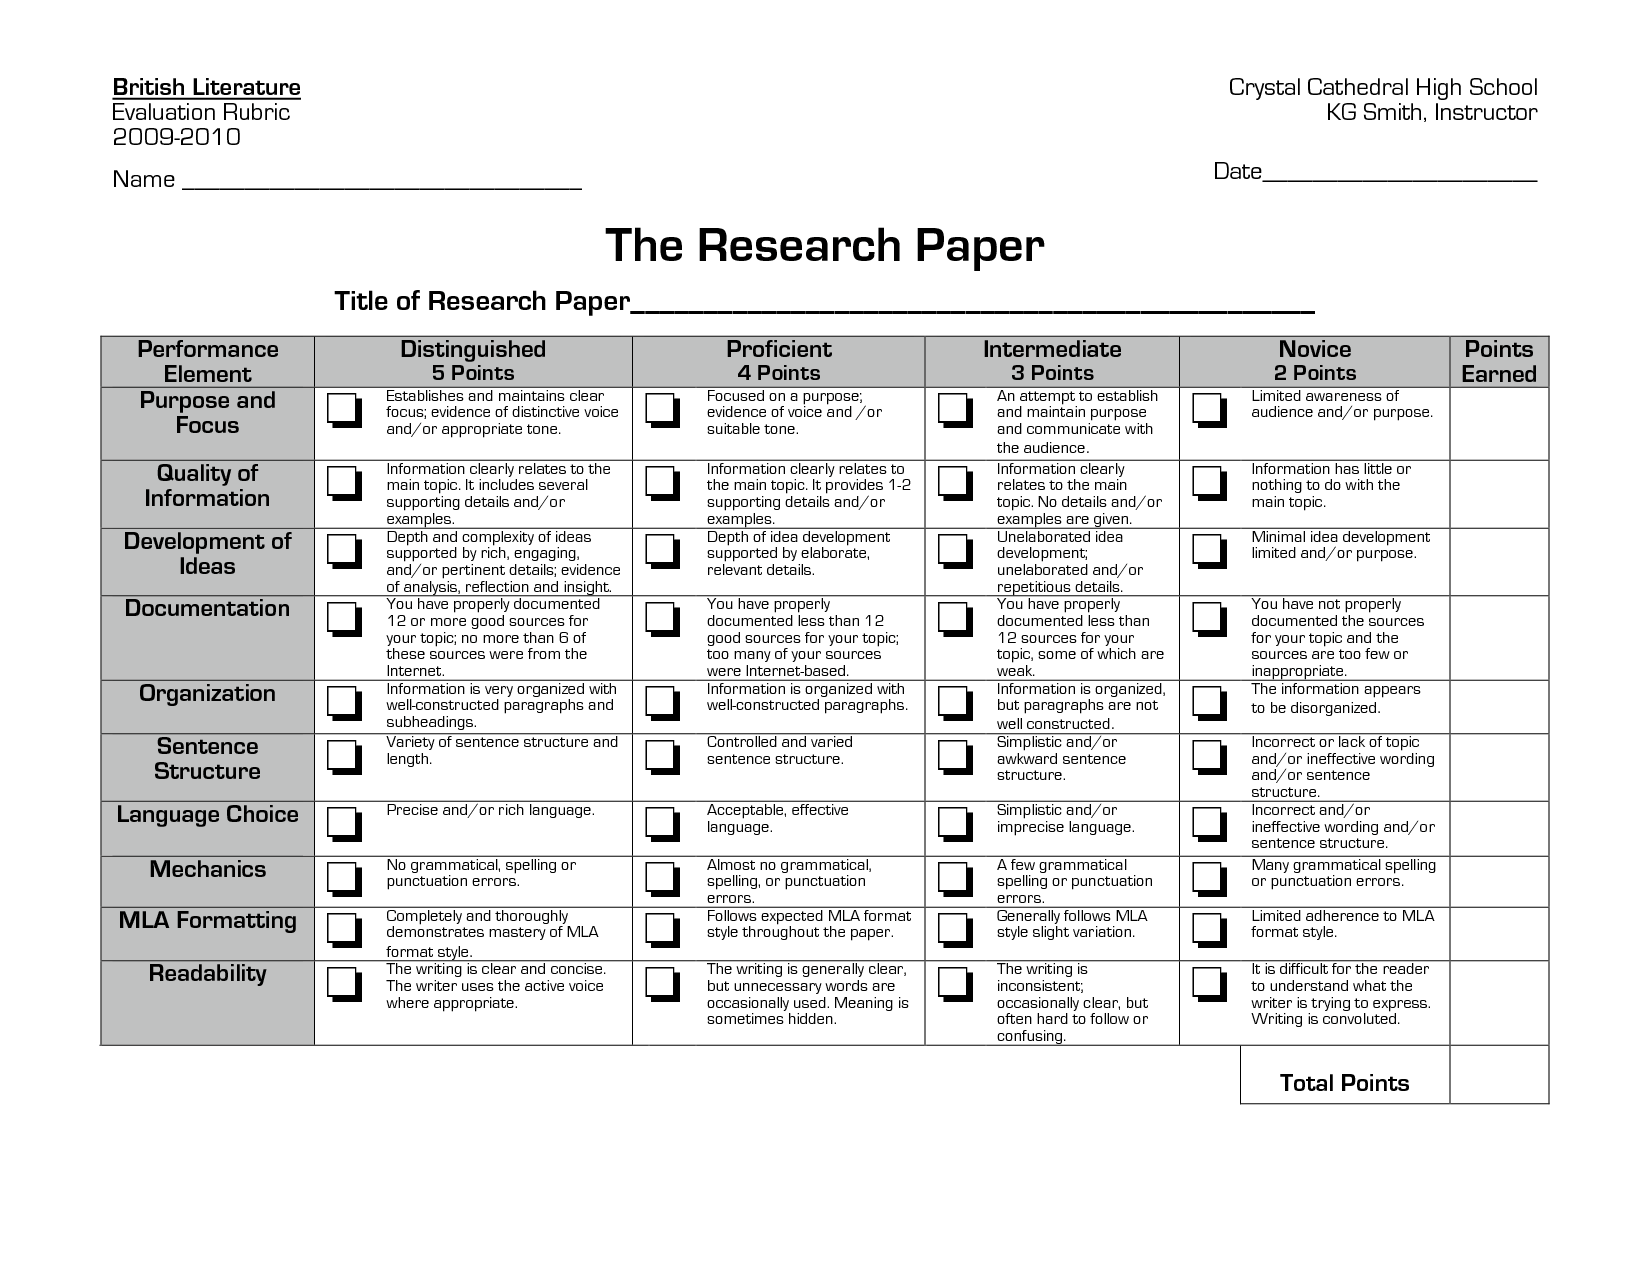 Undergraduate Research Paper Rubric